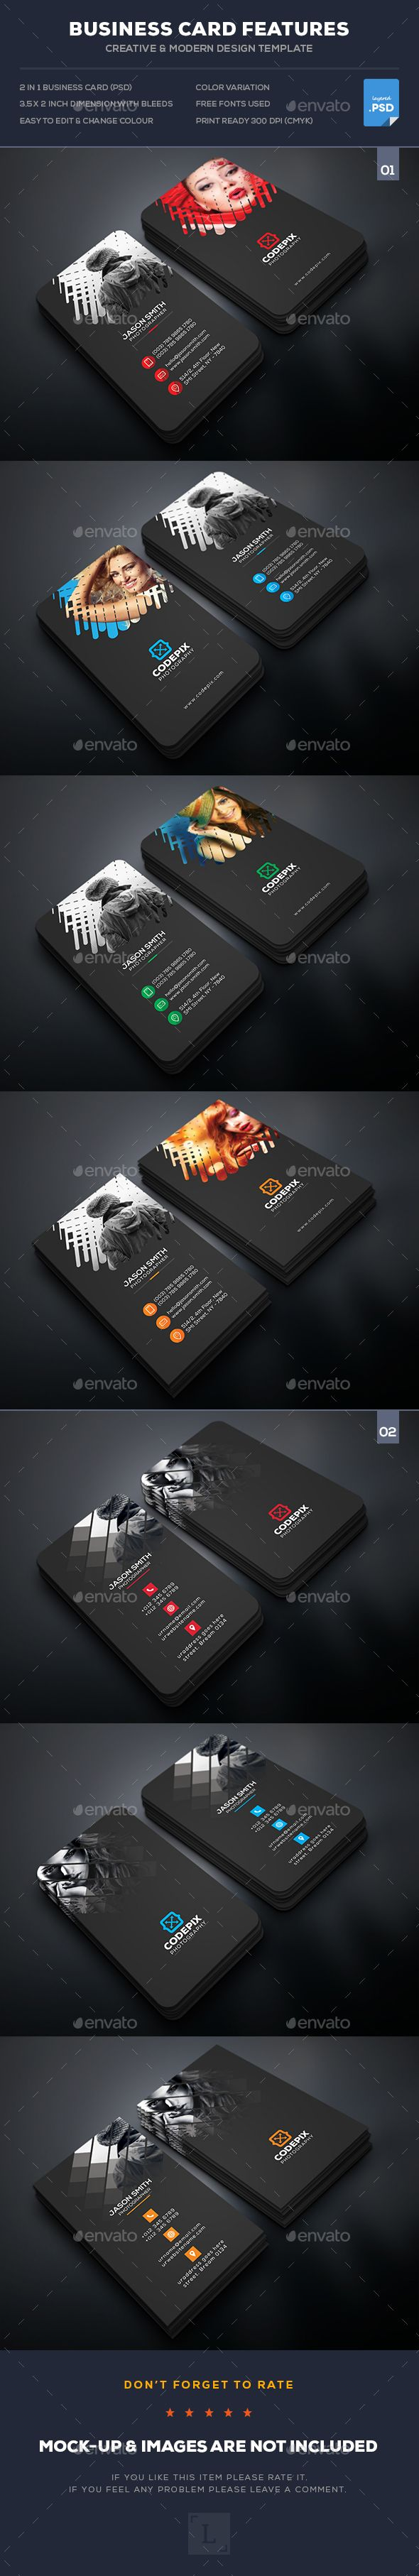 Photography Business Card Bundle Templates PSD. Download here: http://graphicriver.net/item/photography-business-card-bundle/16651909?ref=ksioks